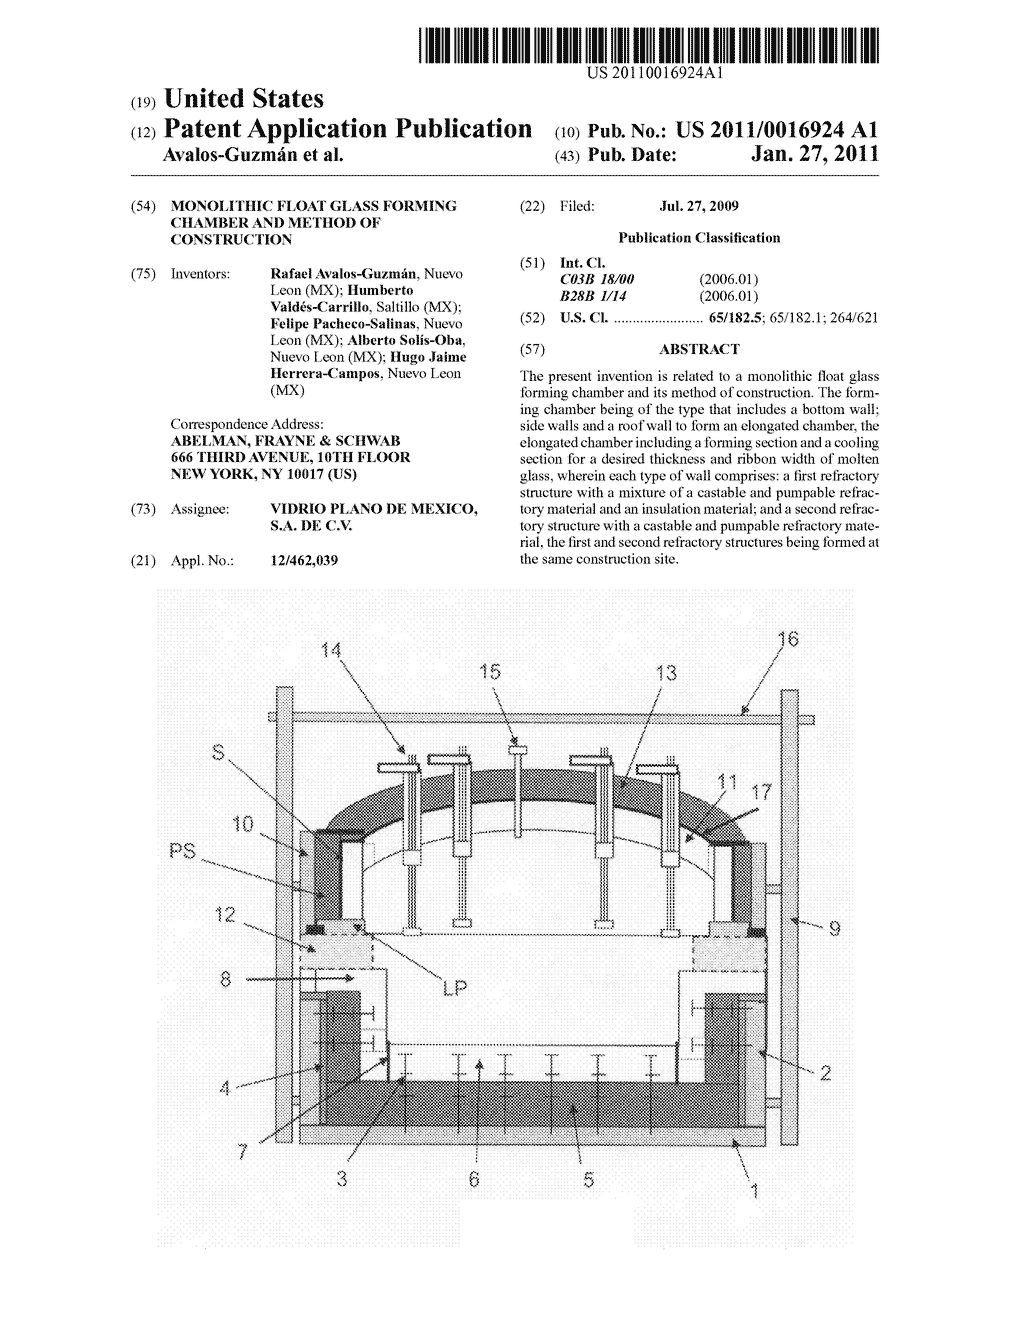 Monolithic float glass forming chamber and method of construction - diagram, schematic, and image 01